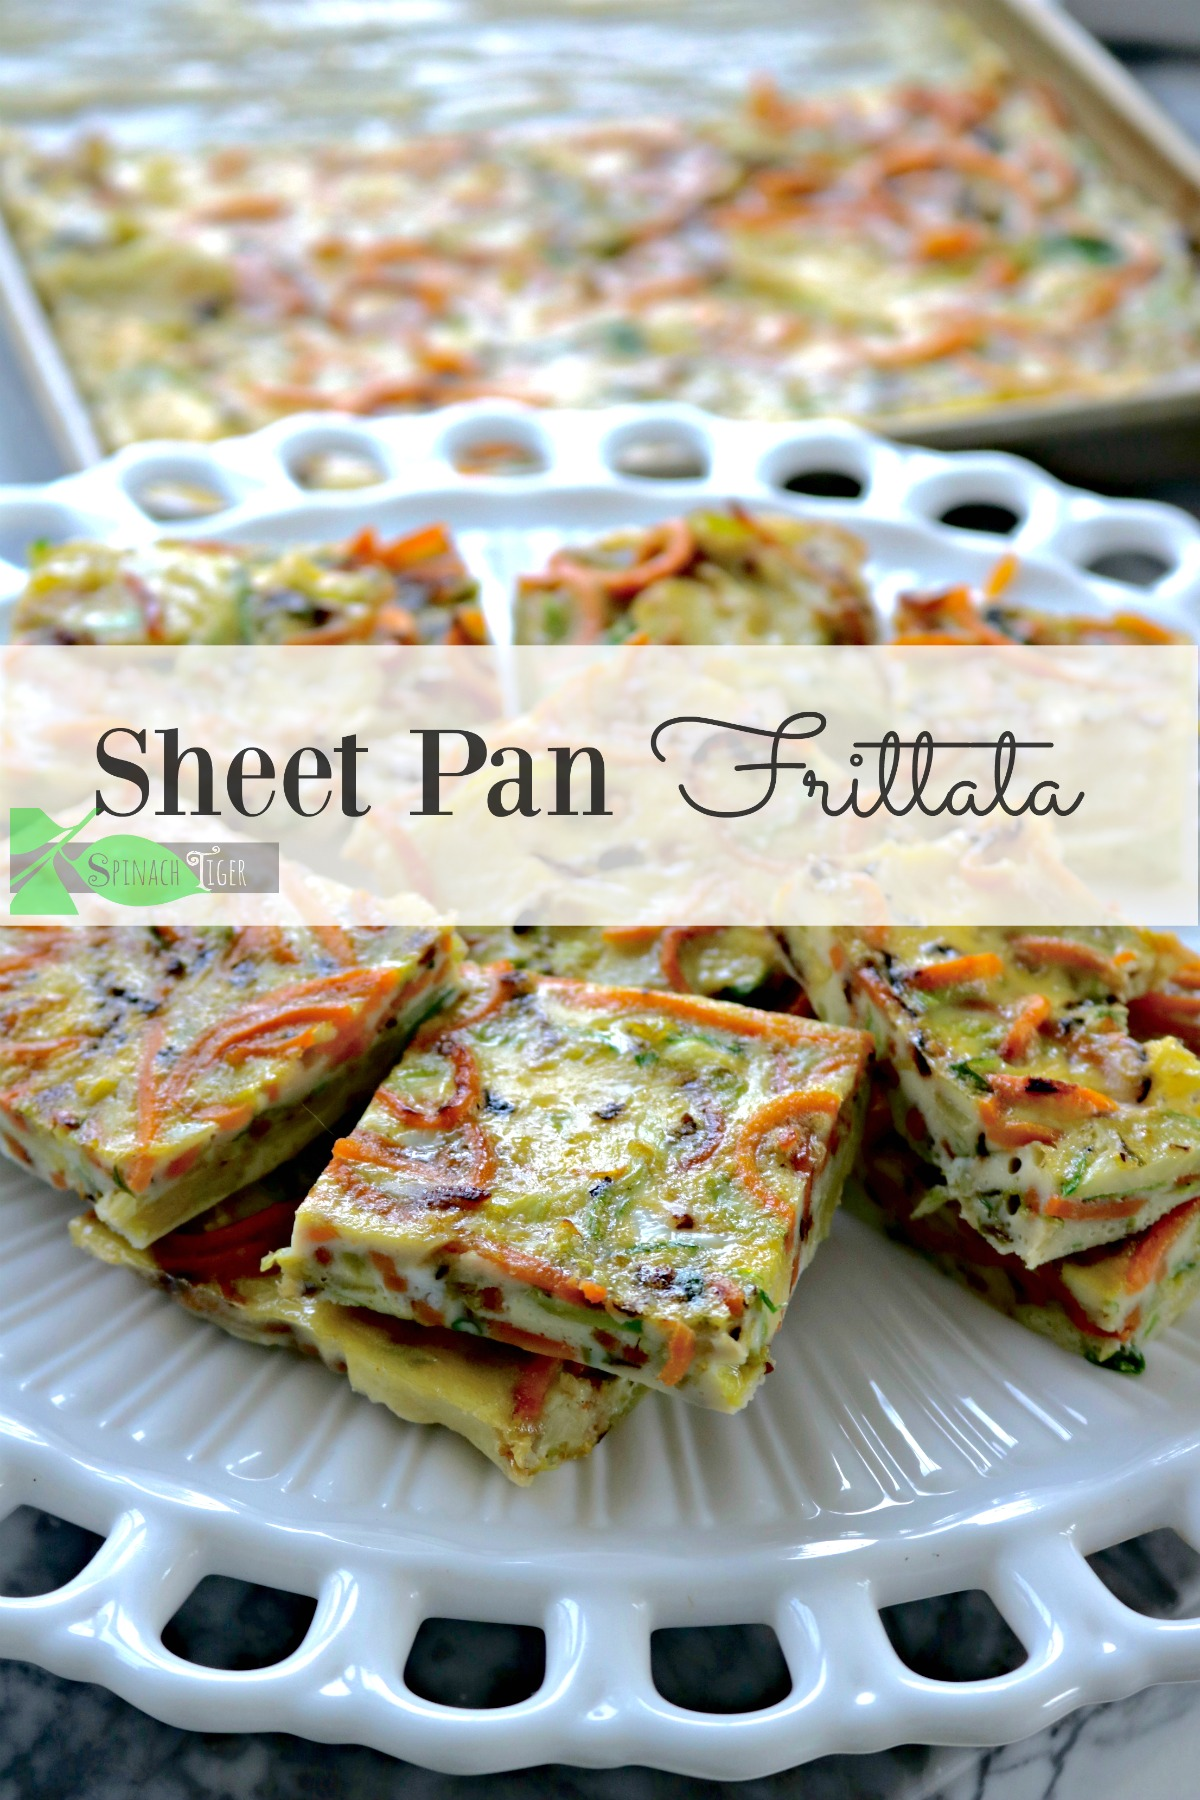 How to Make a Sheet Pan Frittata: A Vegetarian Frittata Recipe from Spinach Tiger